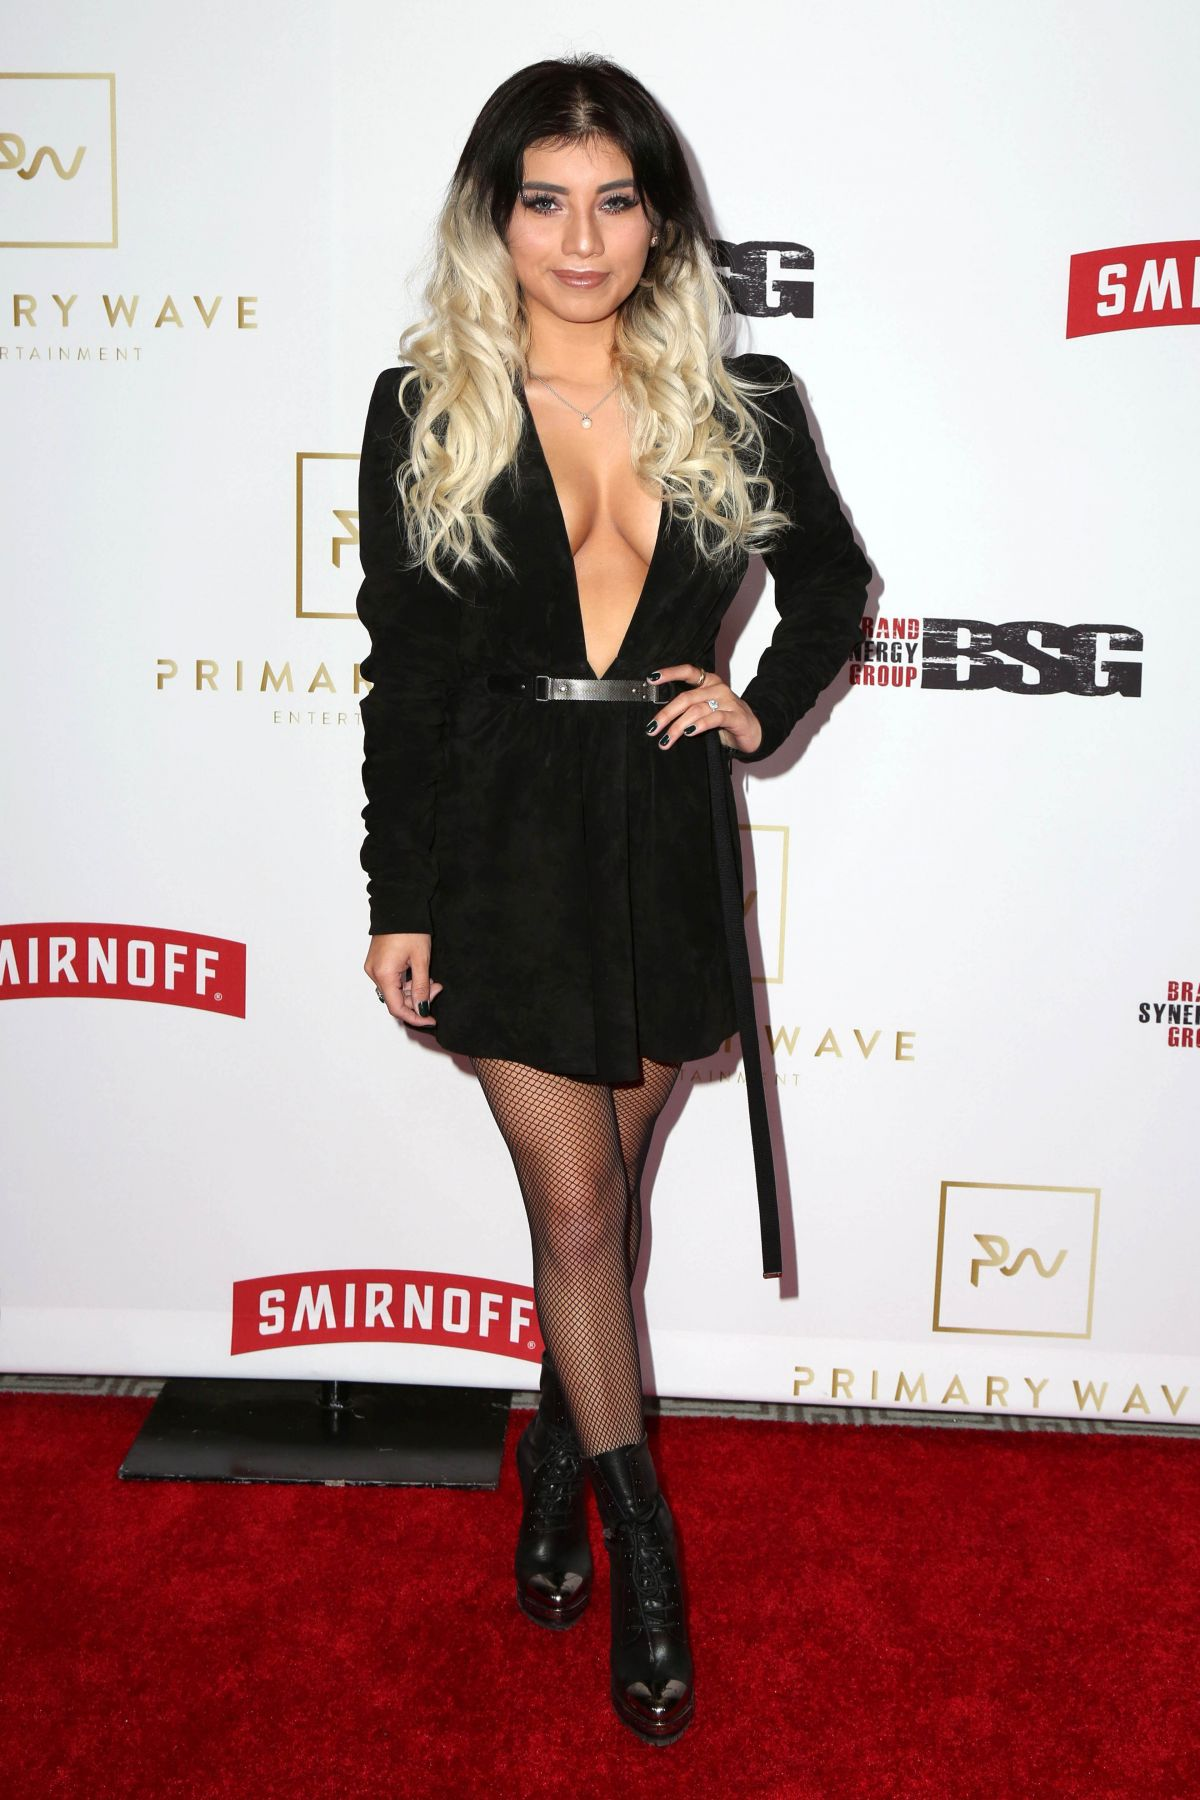 KRISTIN MALDONADO at Primary Wave 11th Annual Pre-Grammy Party in West Hollywood 02/11/2017